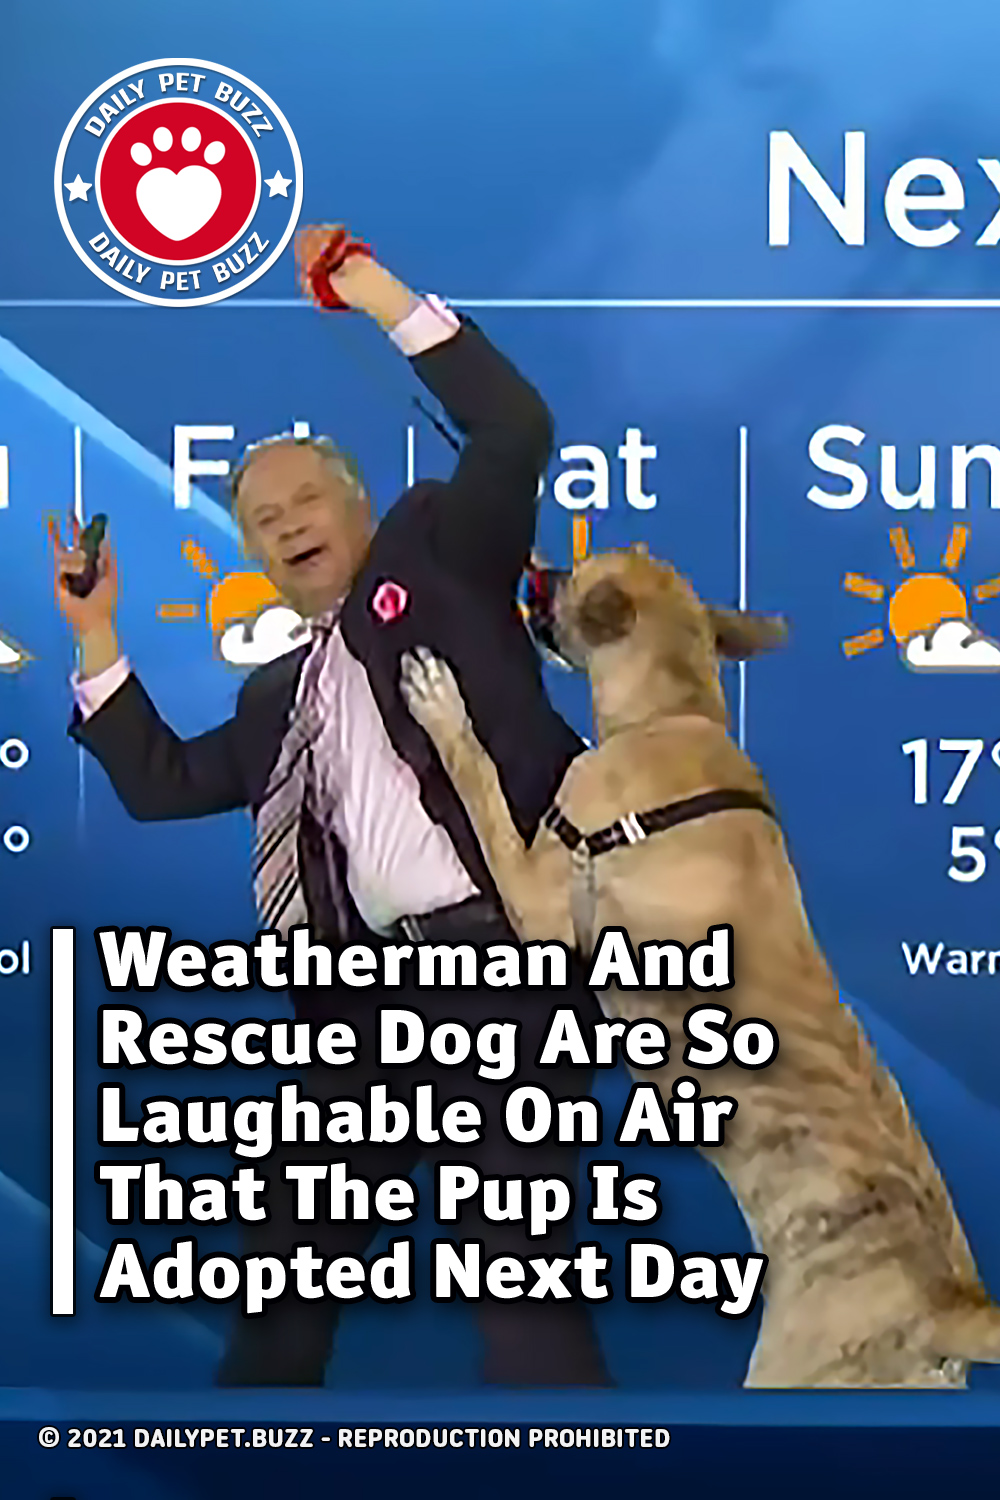 Weatherman And Rescue Dog Are So Laughable On Air That The Pup Is Adopted Next Day